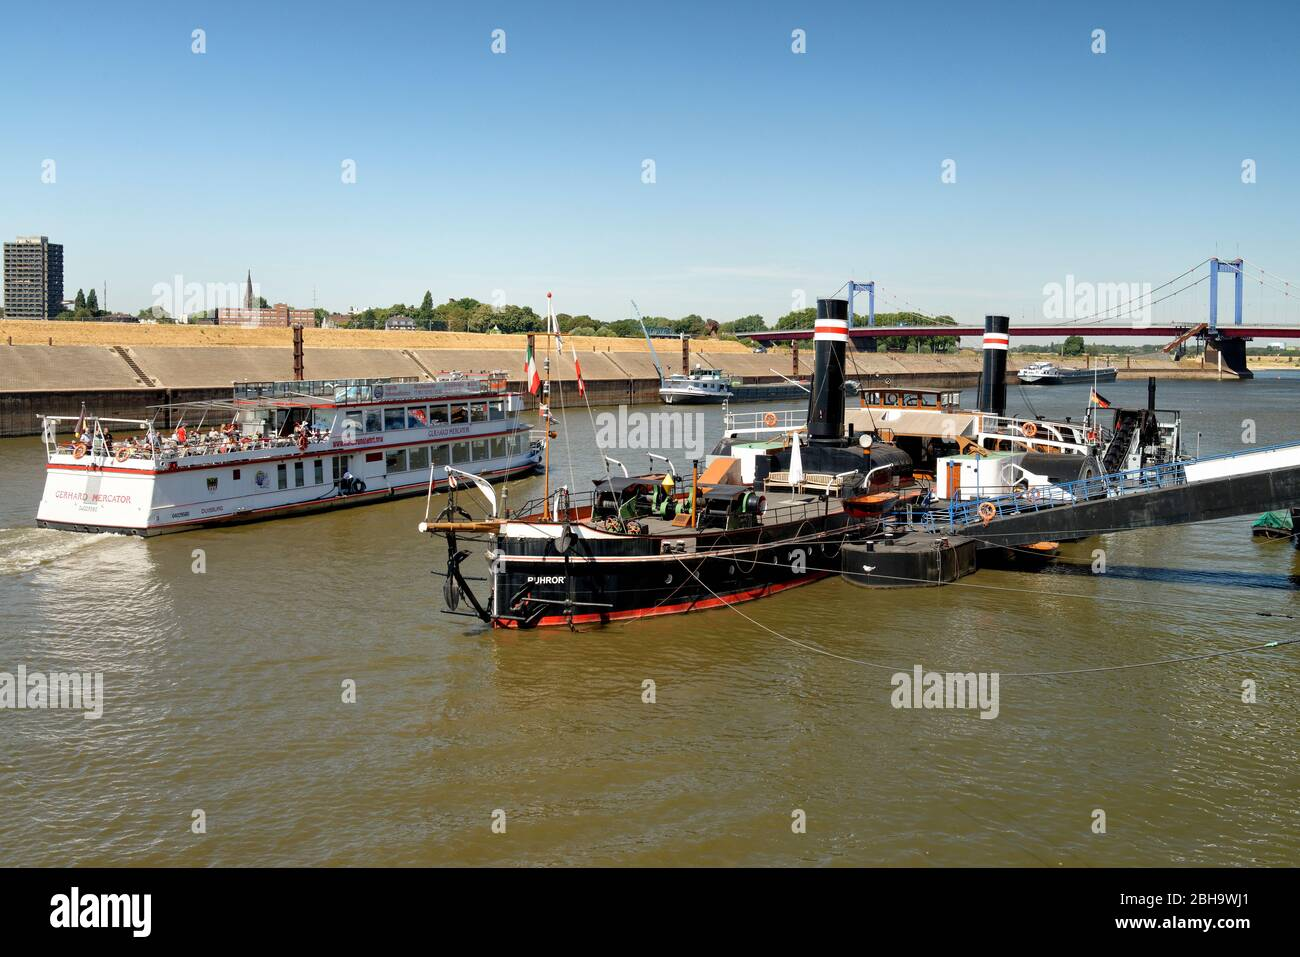 View of an excursion boat and the wheeled tug Oskar Huber, Museum Ship, Museum of German Inland Navigation, Duisburg-Ruhrort, Duisburg, North Rhine-Westphalia, Germany Stock Photo